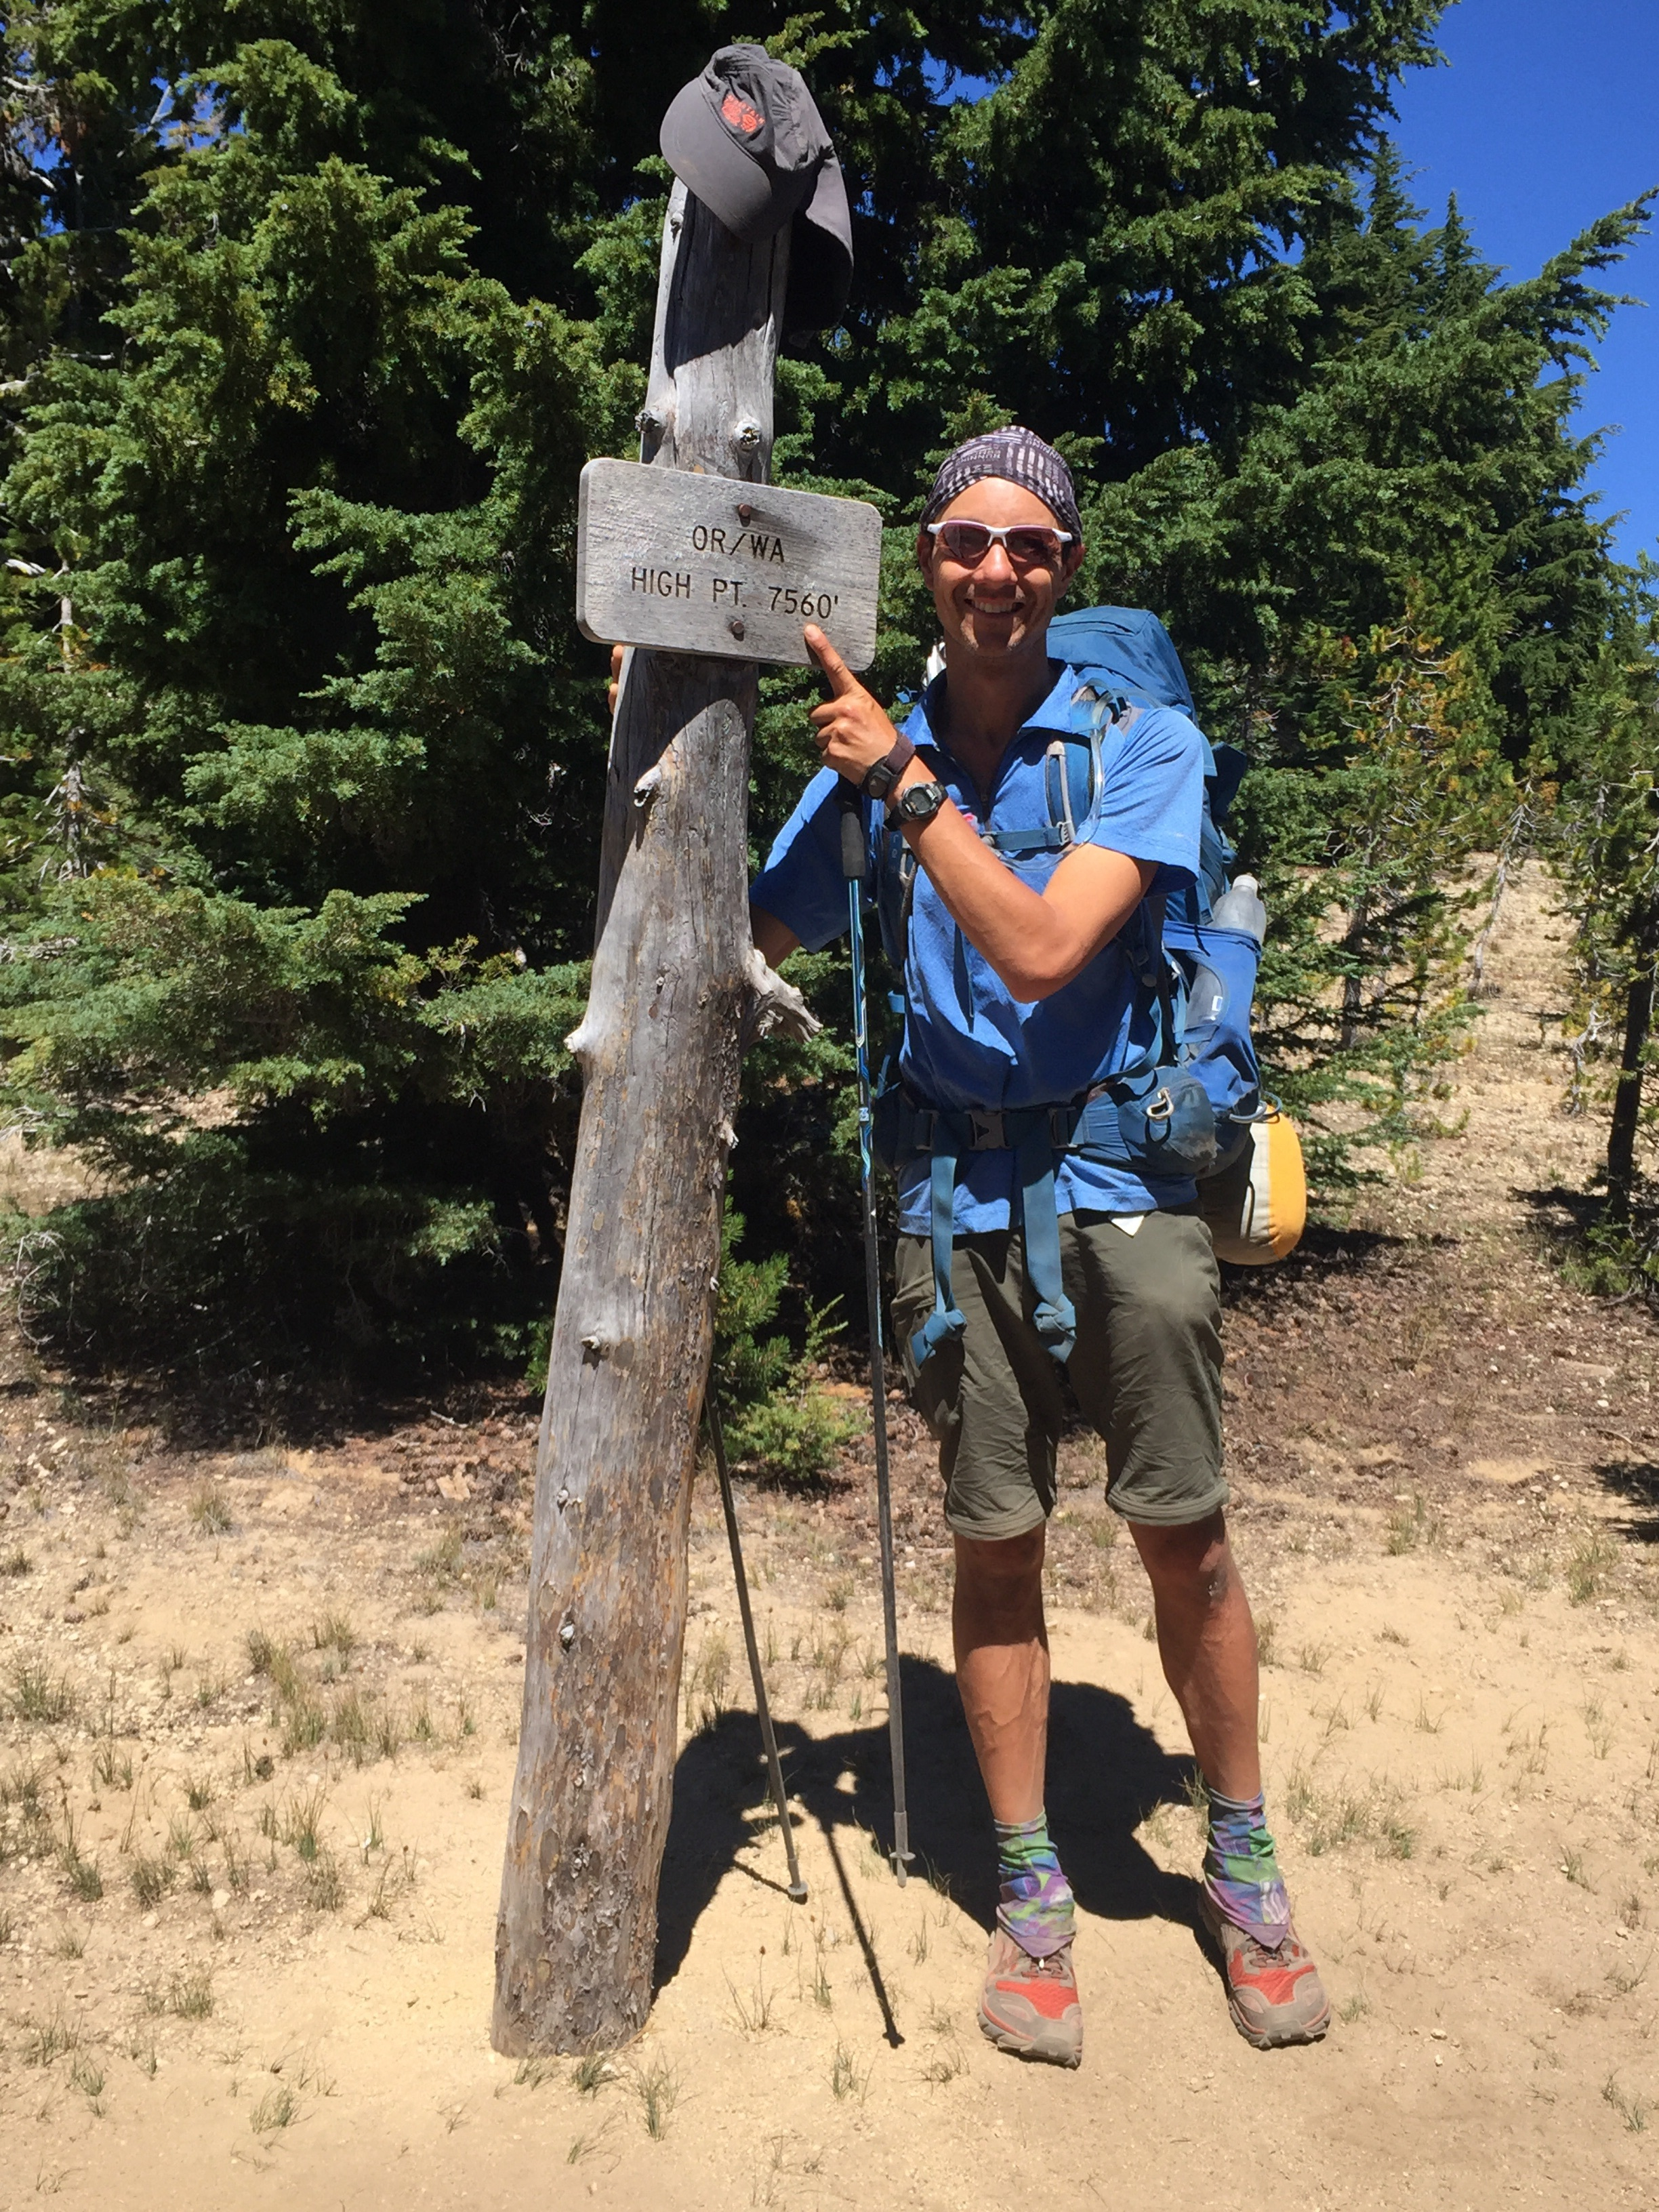 The highest official point on the OR/WA PCT (not counting popular alternate routes)